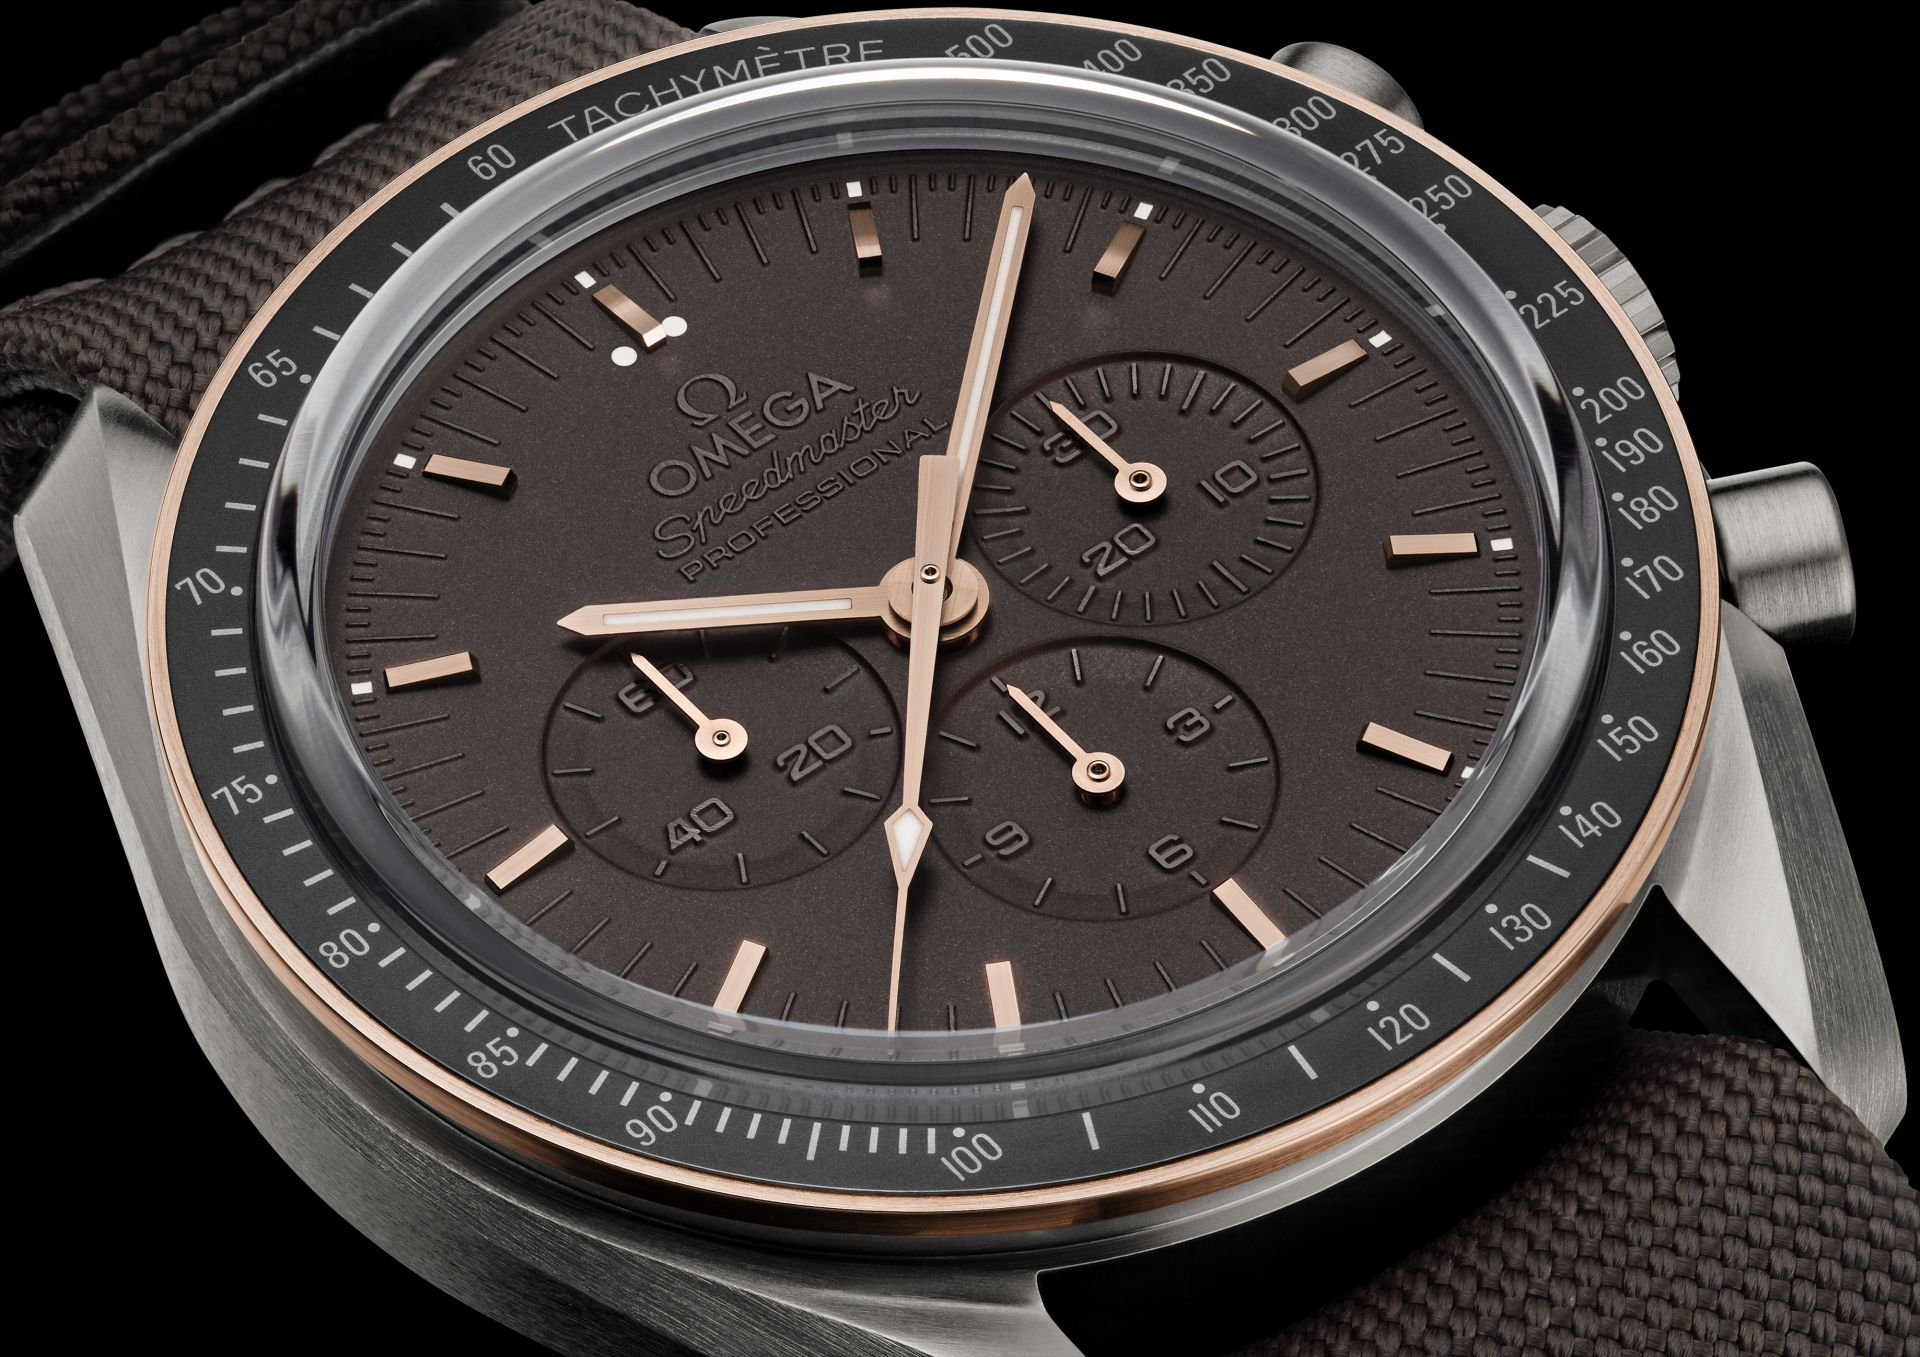 Baselworld 2014, Omega launches Apollo 11 back to the sky